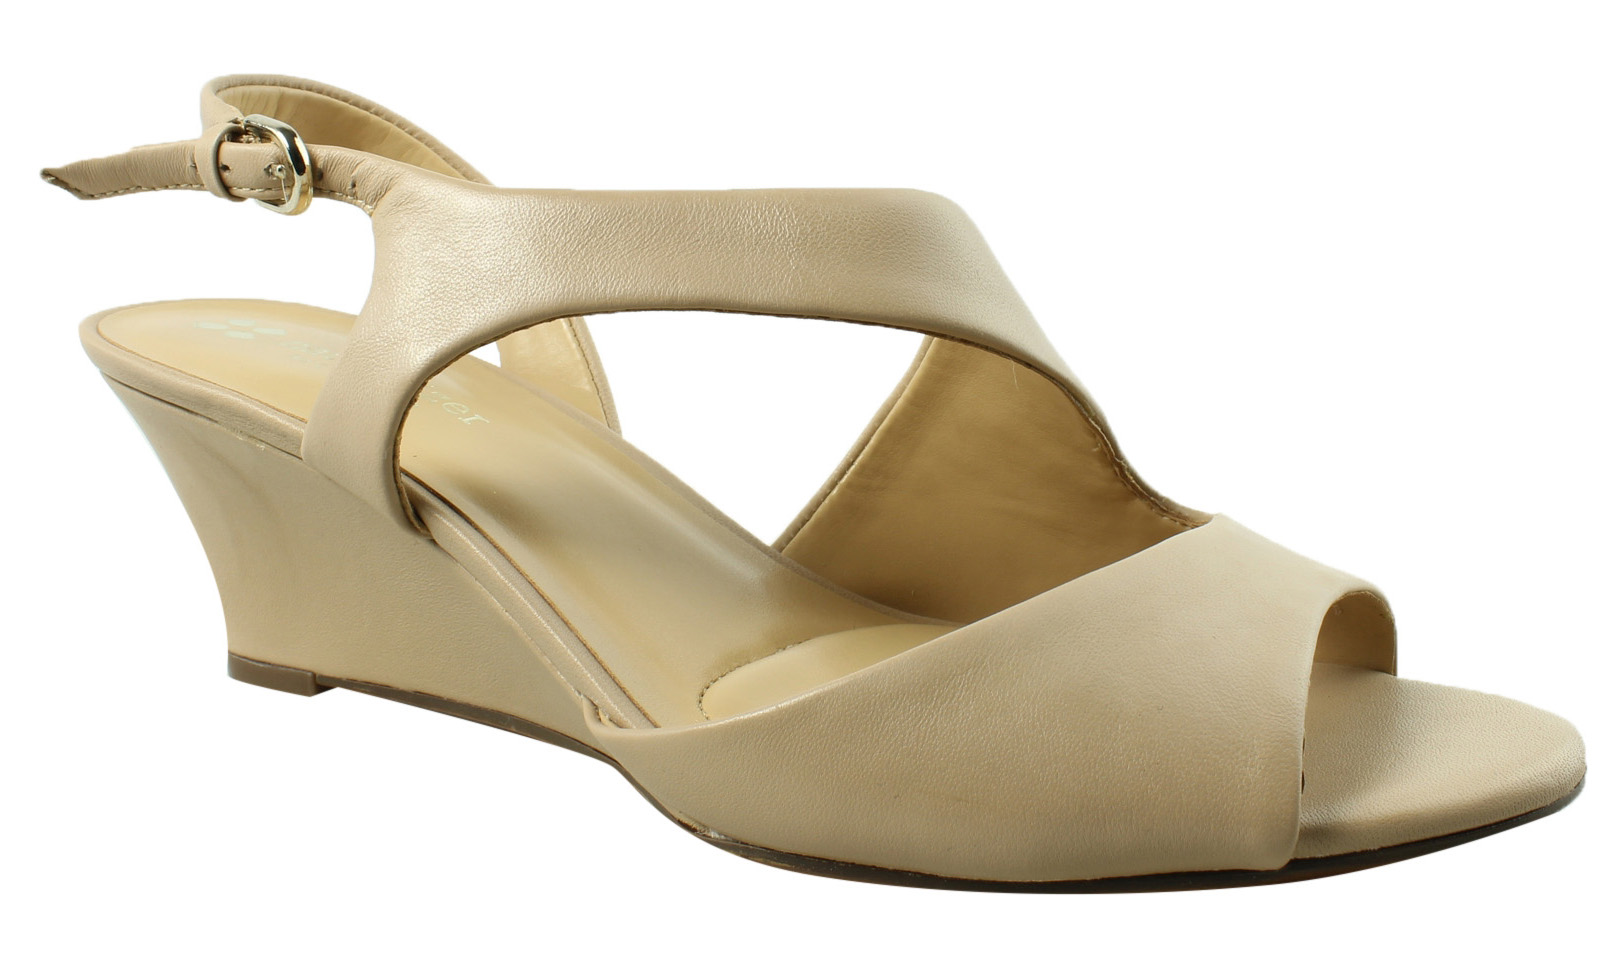 8bae487226a1 Image is loading Naturalizer-Womens-Brown-Ankle-Strap-Heels-Size-8-